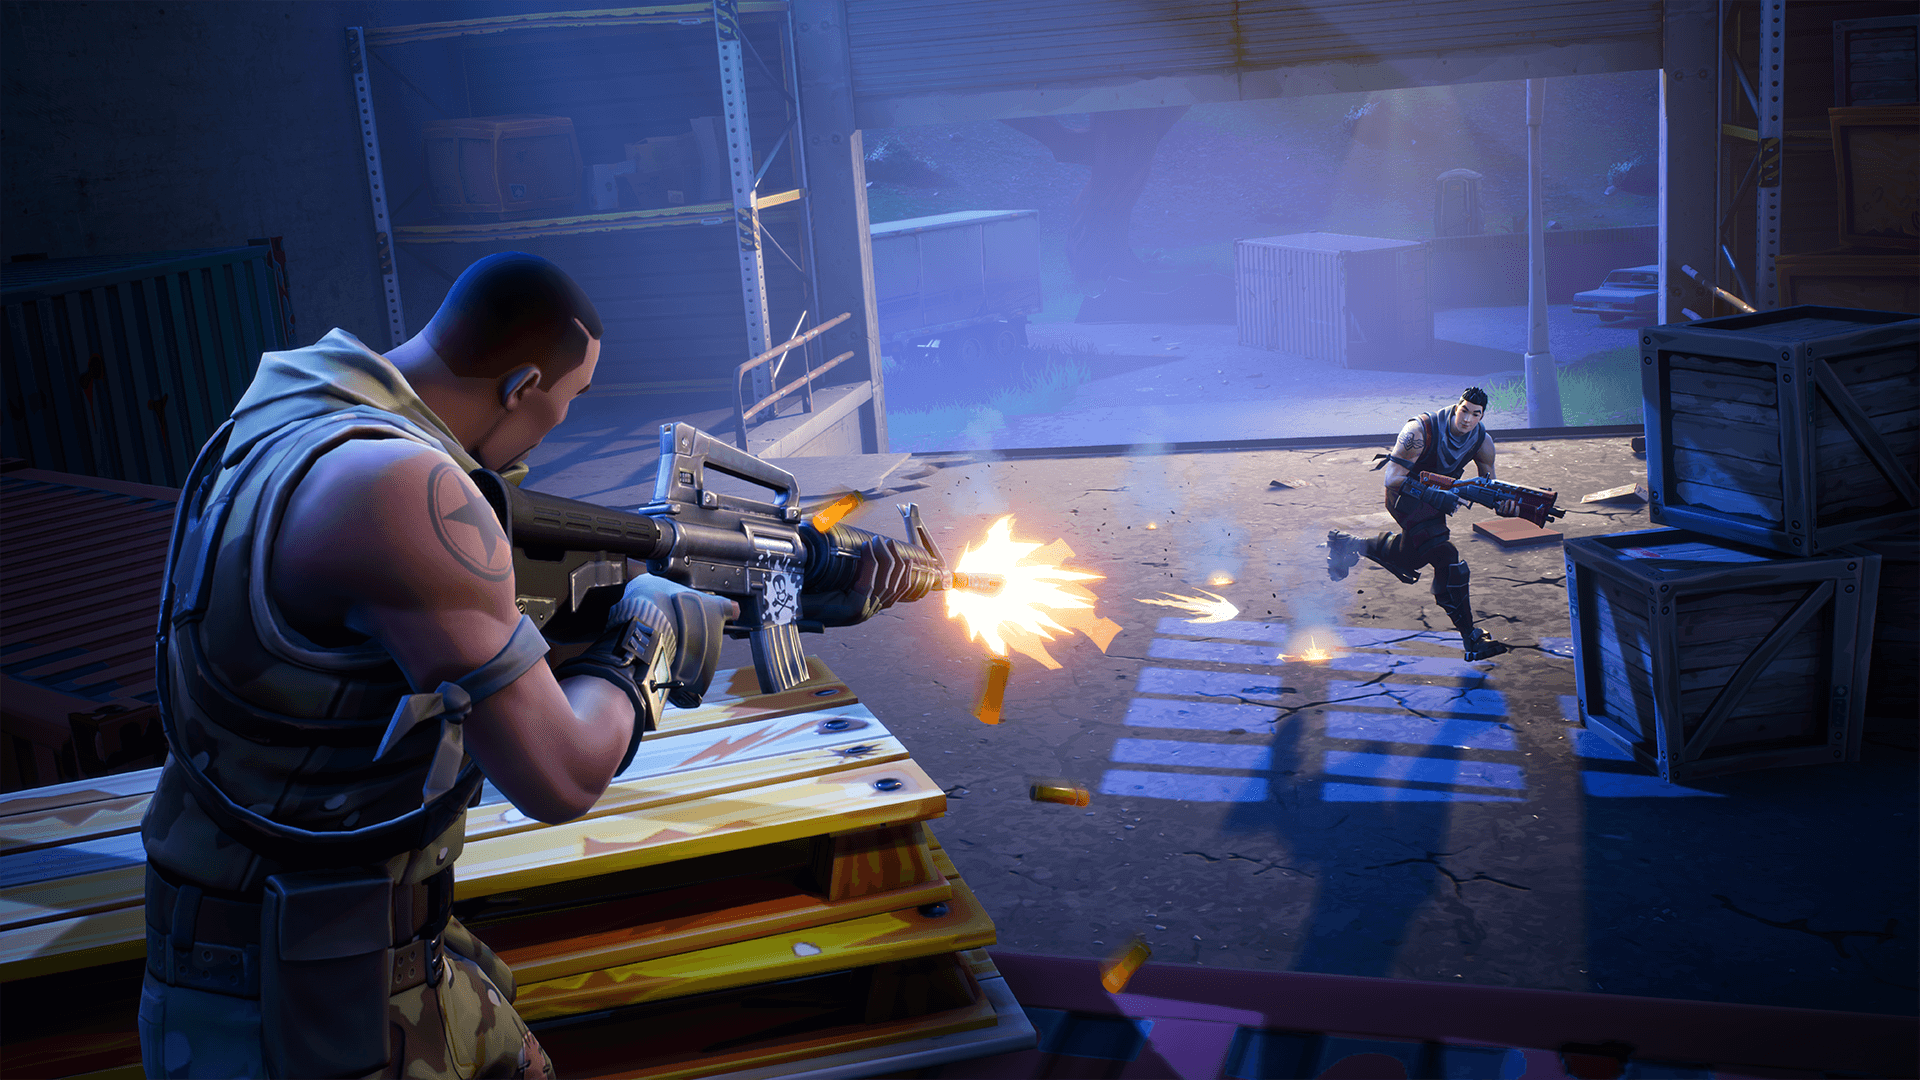 fortnite comment jouer au battle royale free to play - comment se connecter sur fortnite ps4